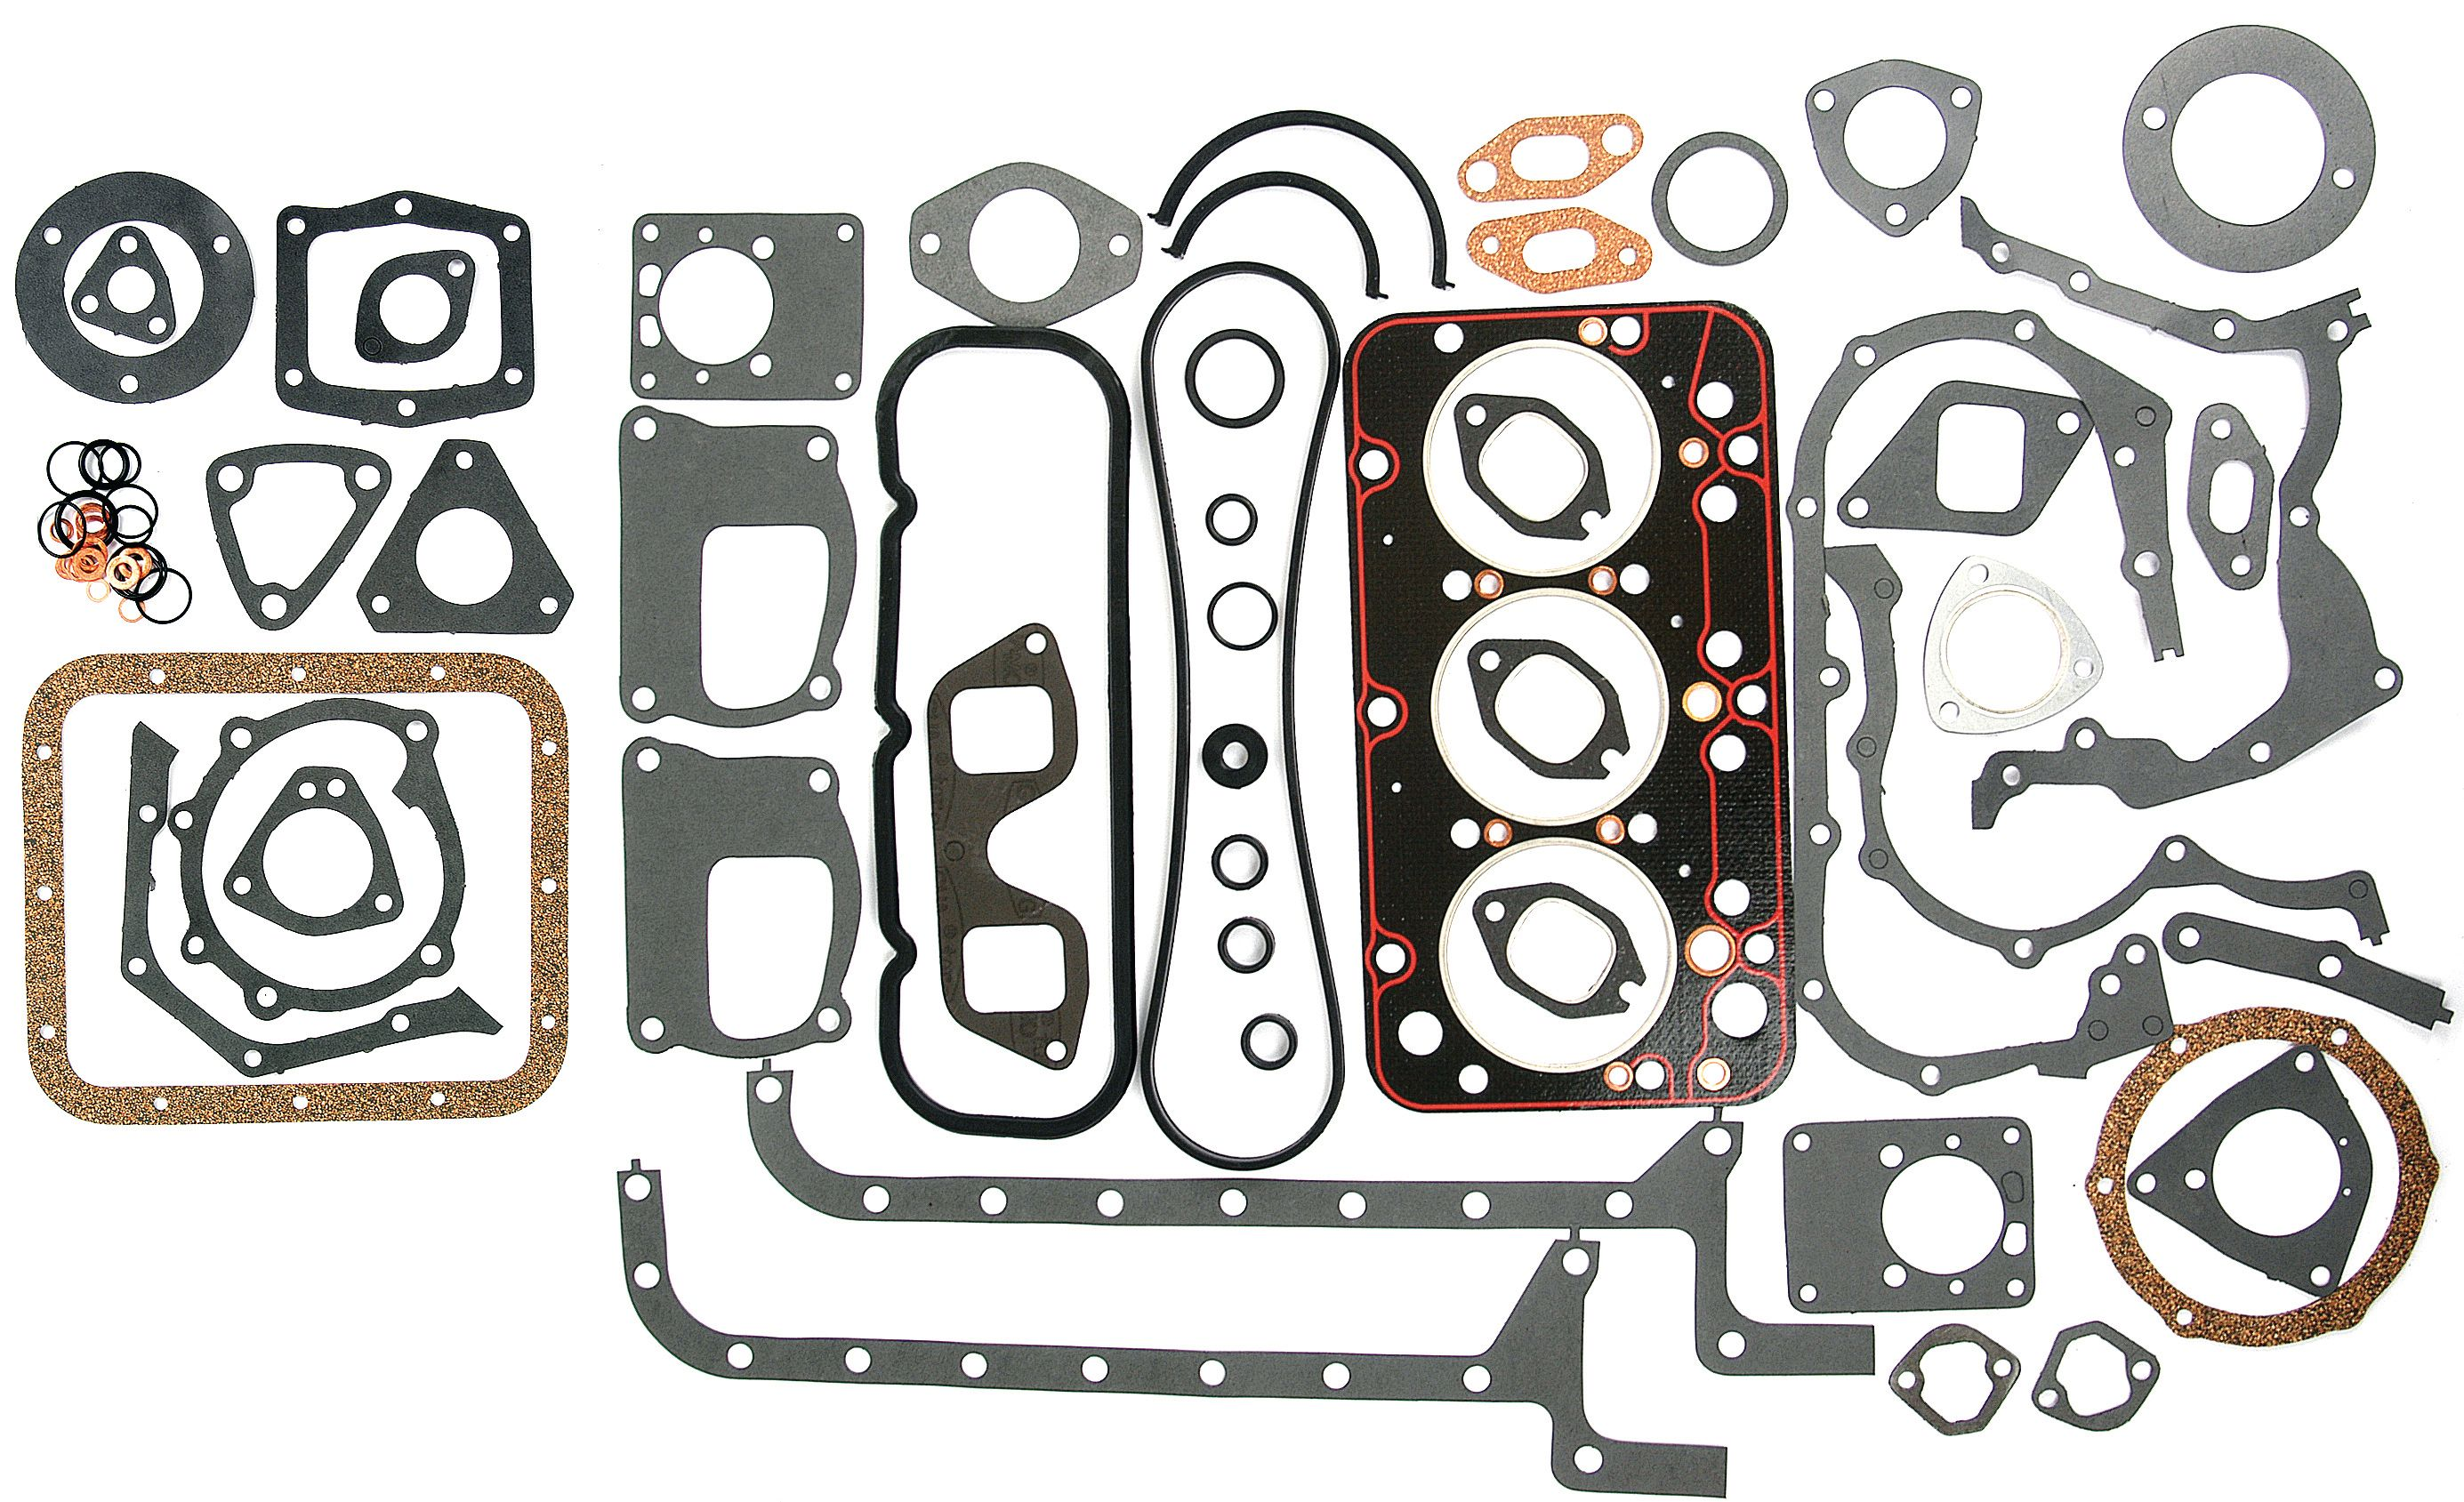 CASE IH GASKET SET-FULL W/O SEALS 62080